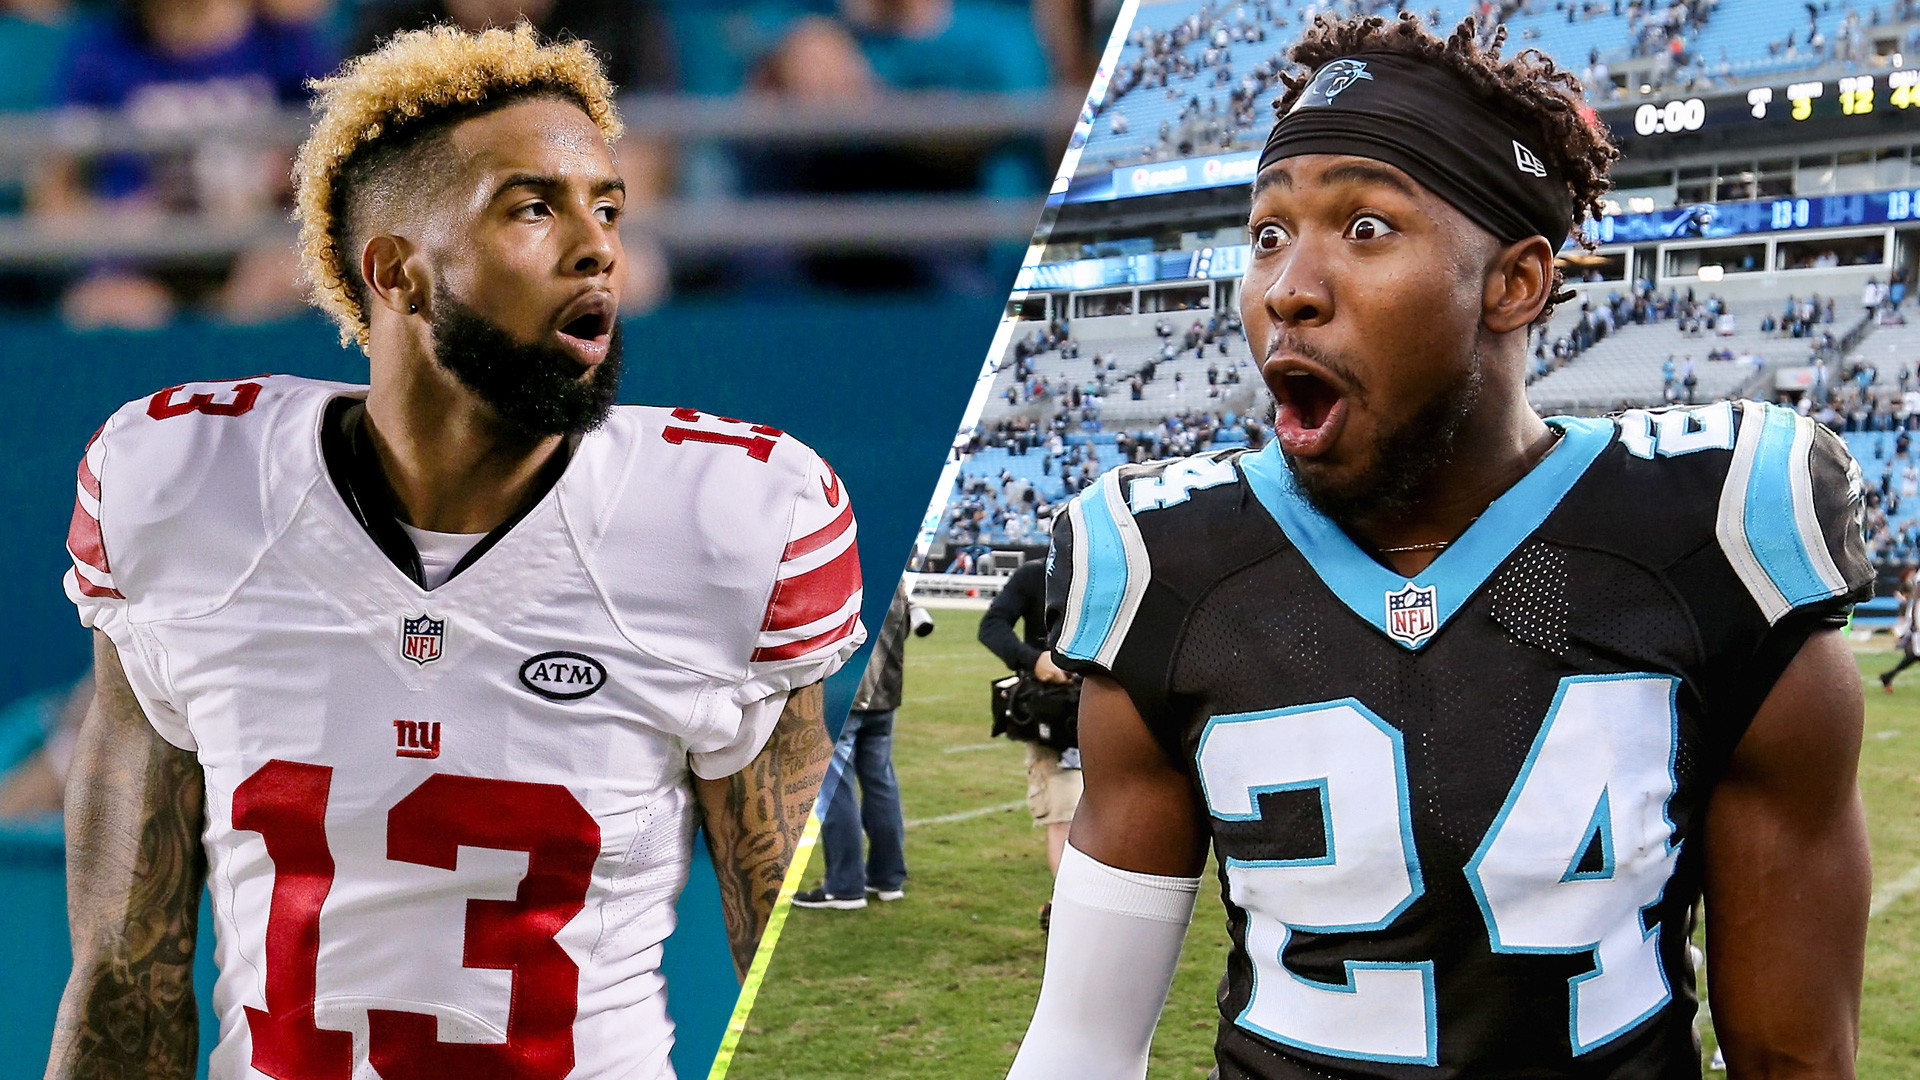 Eat or be eaten: Josh Norman, Odell Beckham ready to feast in marquee  matchup | NFL | Sporting News